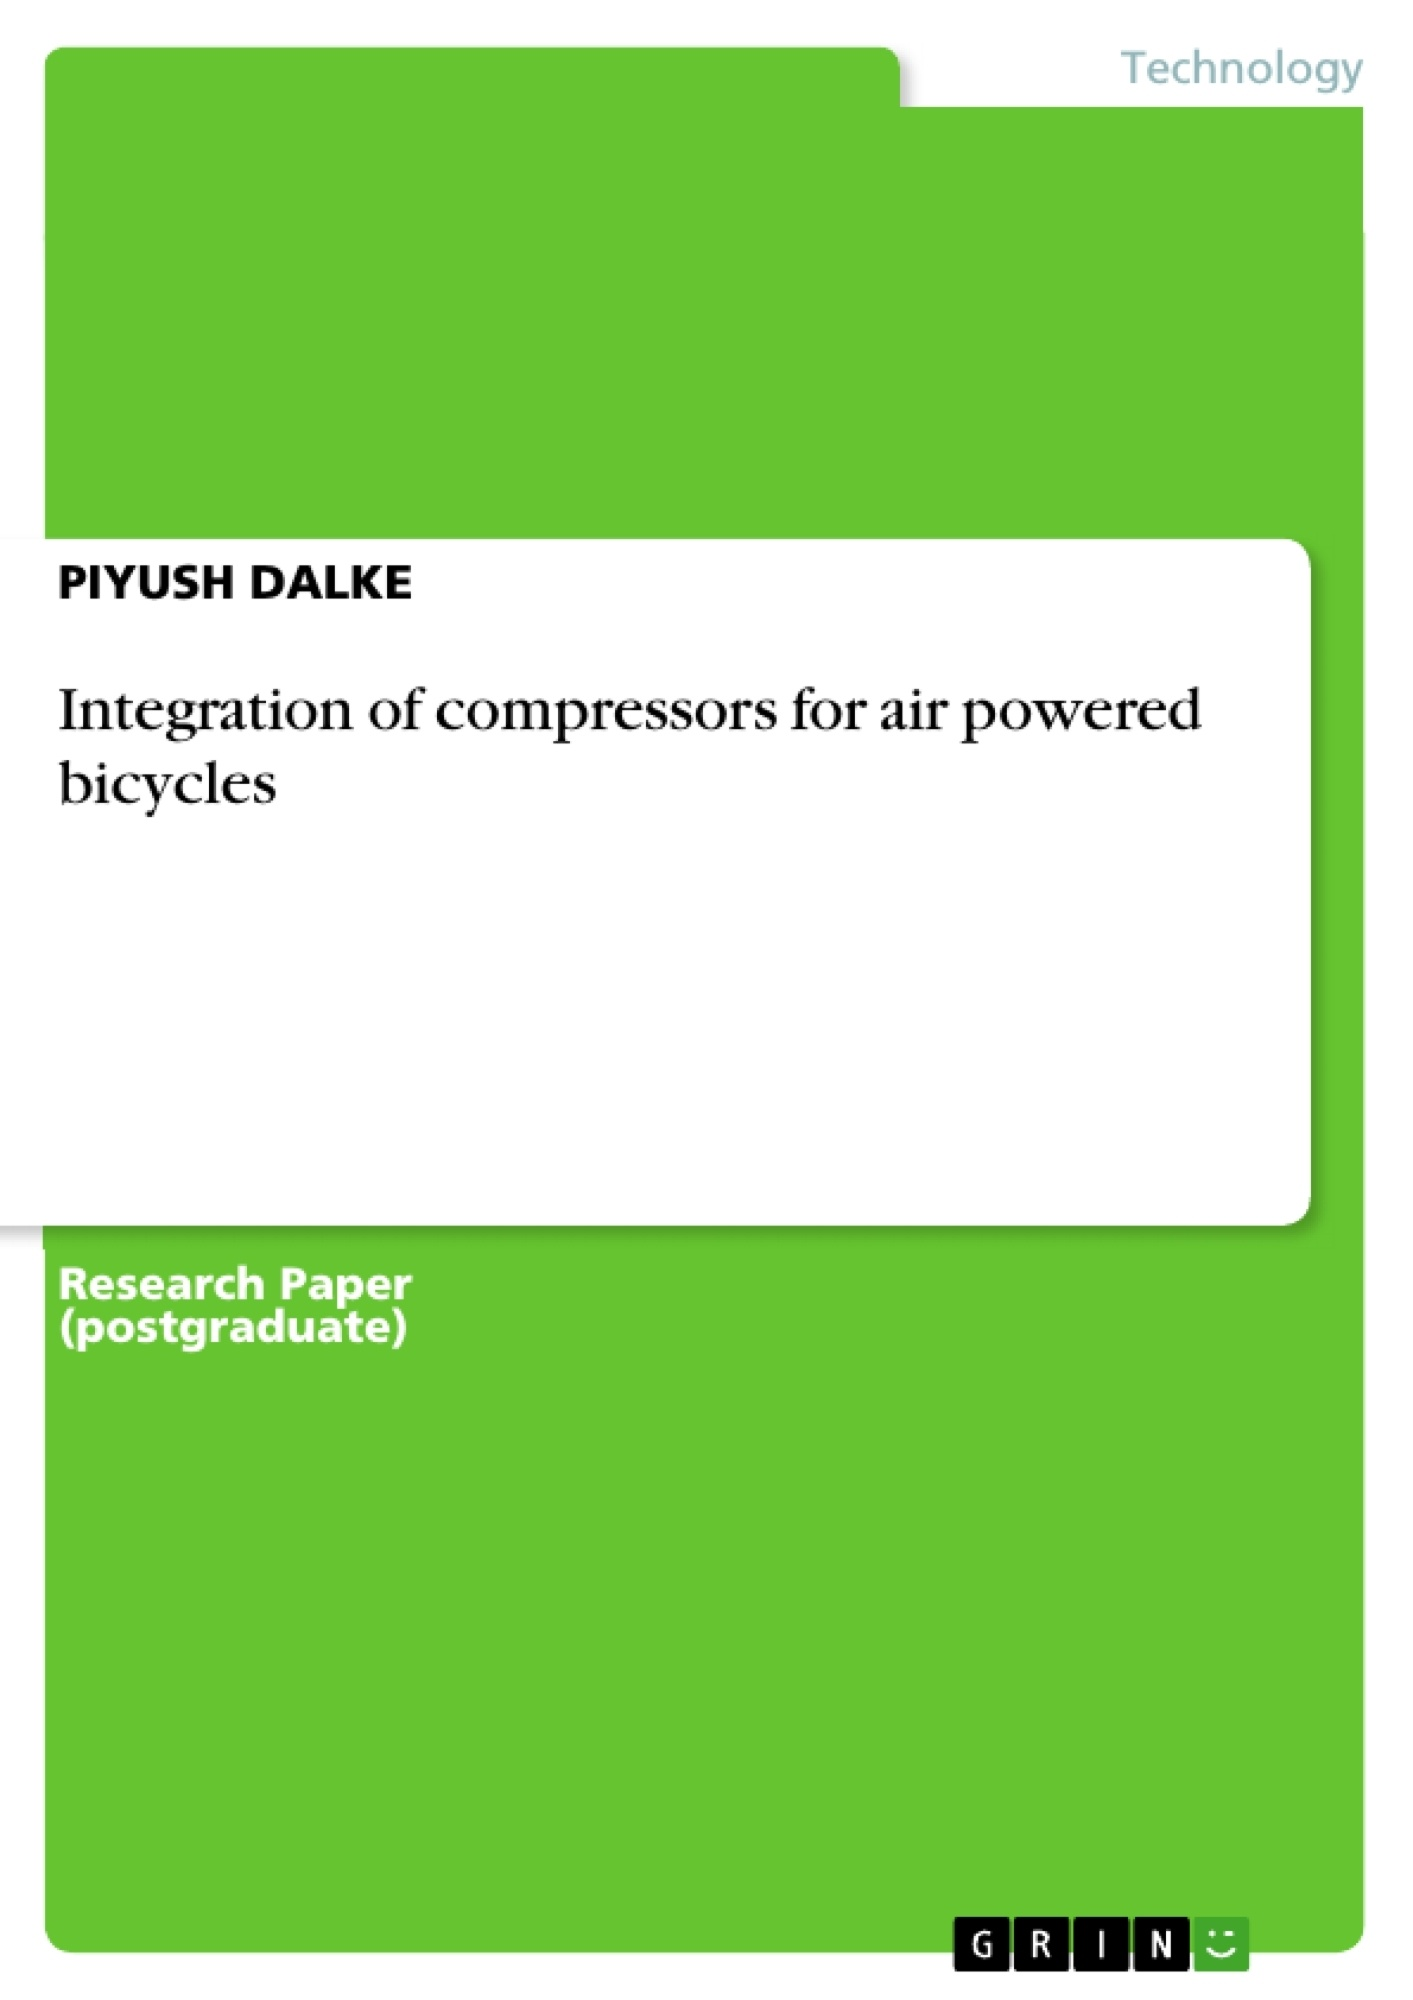 Title: Integration of compressors for air powered bicycles